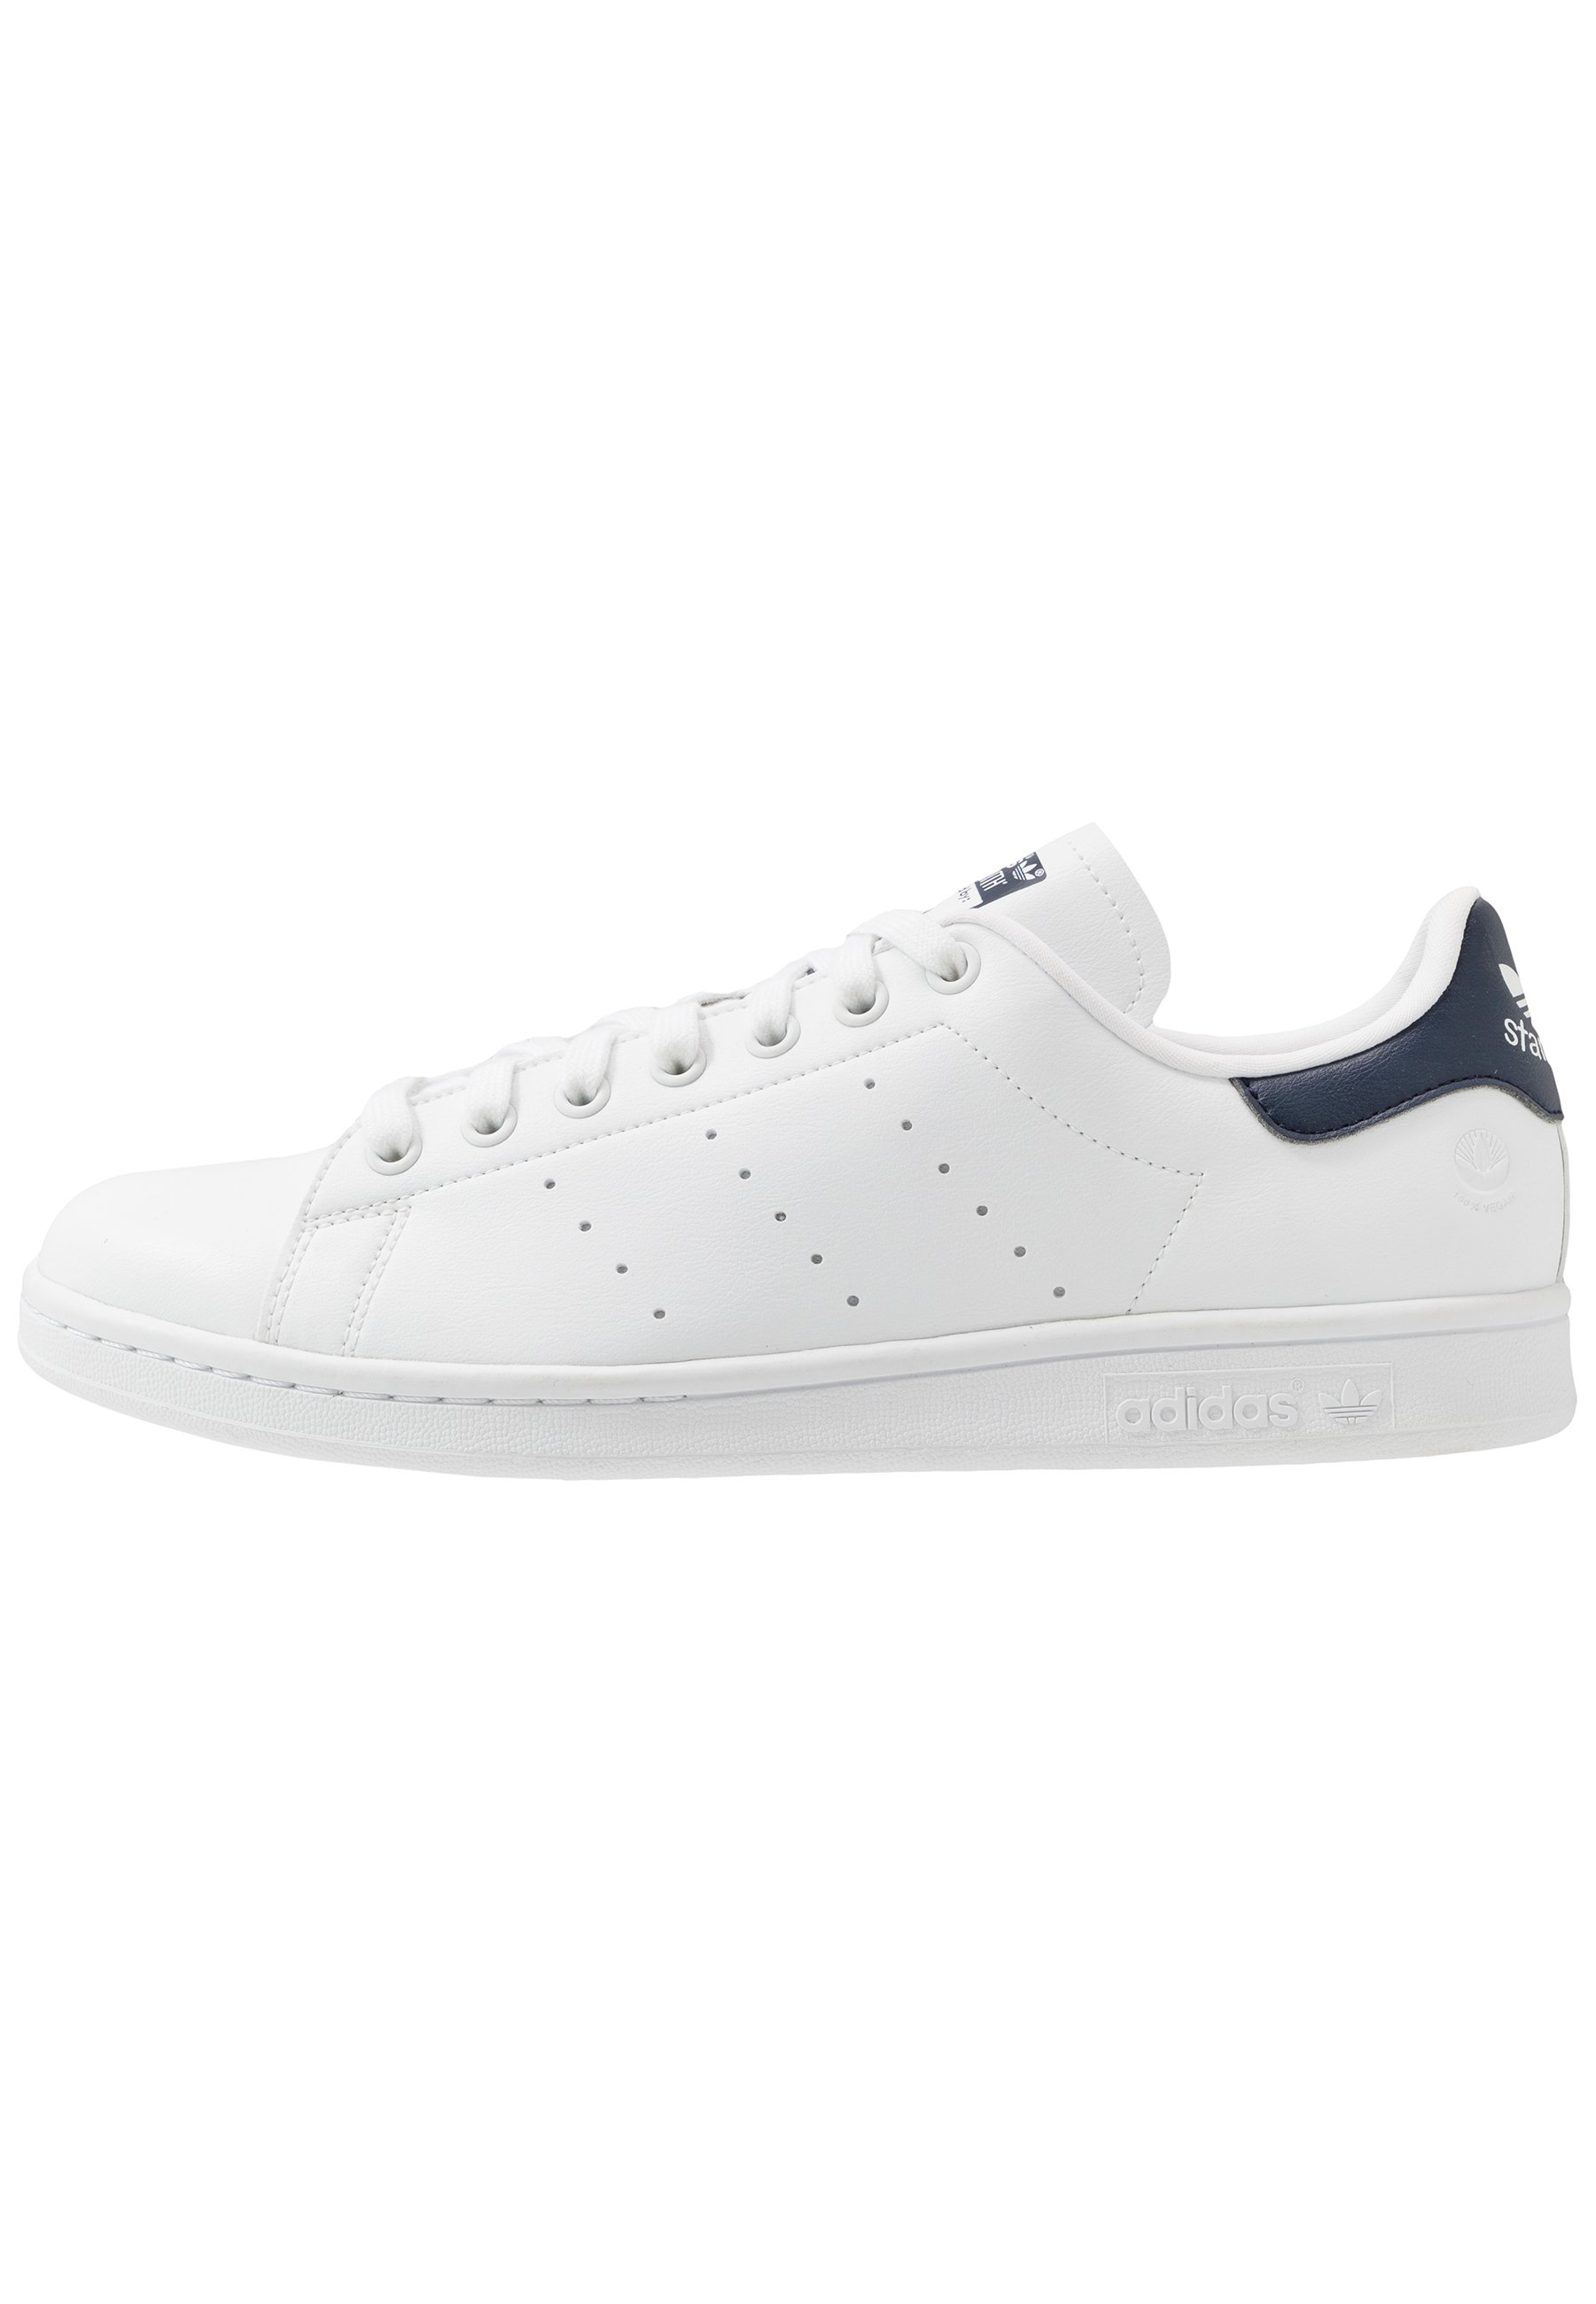 adidas Originals STAN SMITH VEGAN SPORTS INSPIRED SHOES